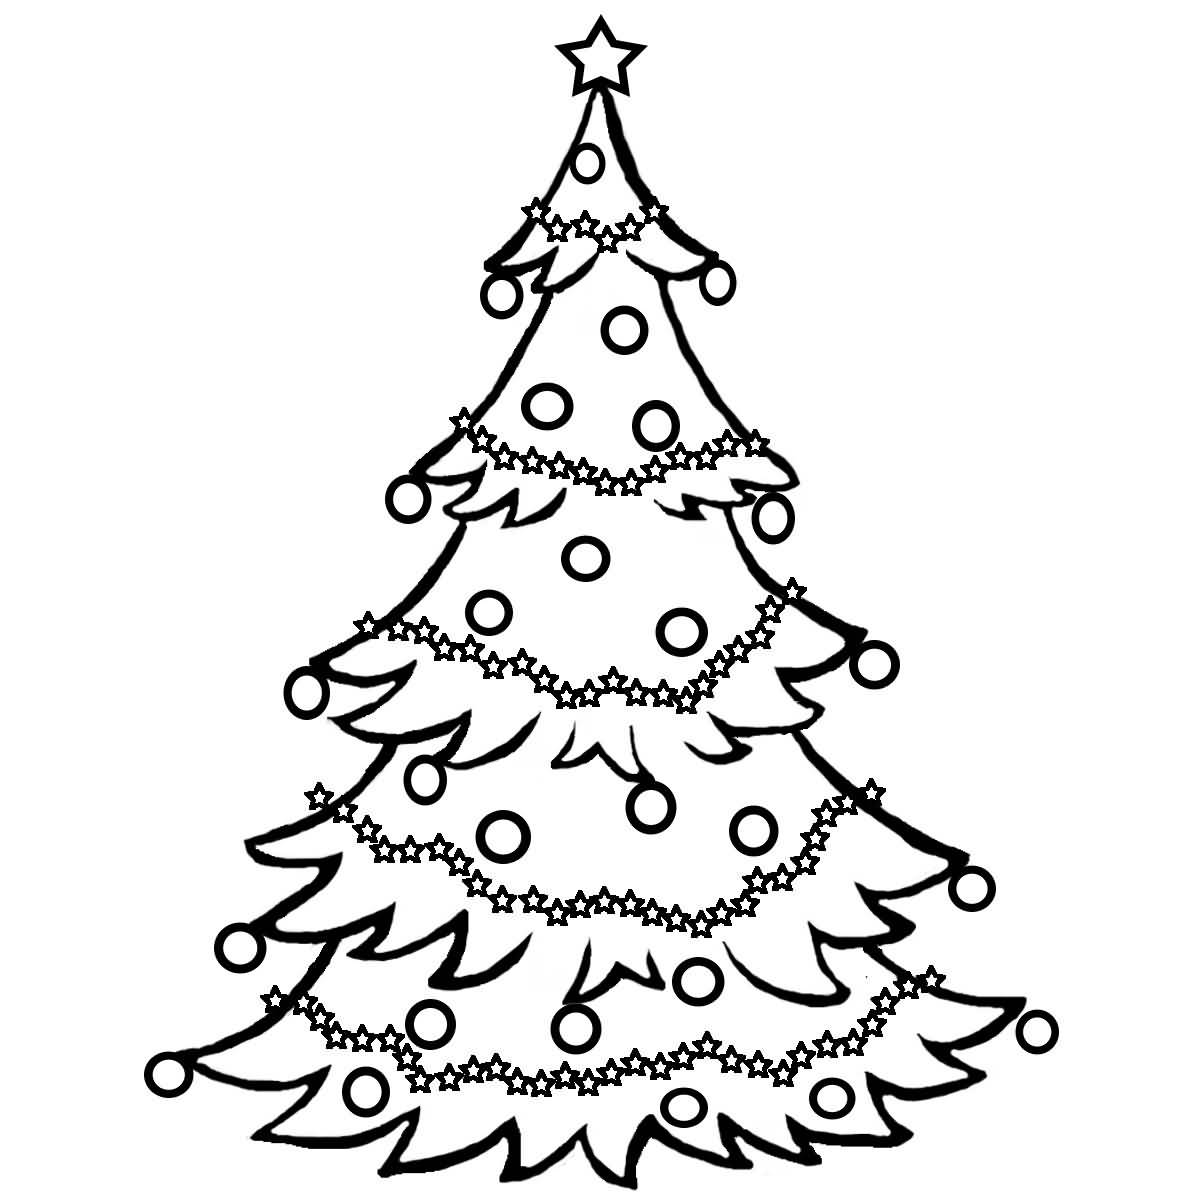 Christmas Tree Coloring Pages Image Picture Photo Wallpaper 17